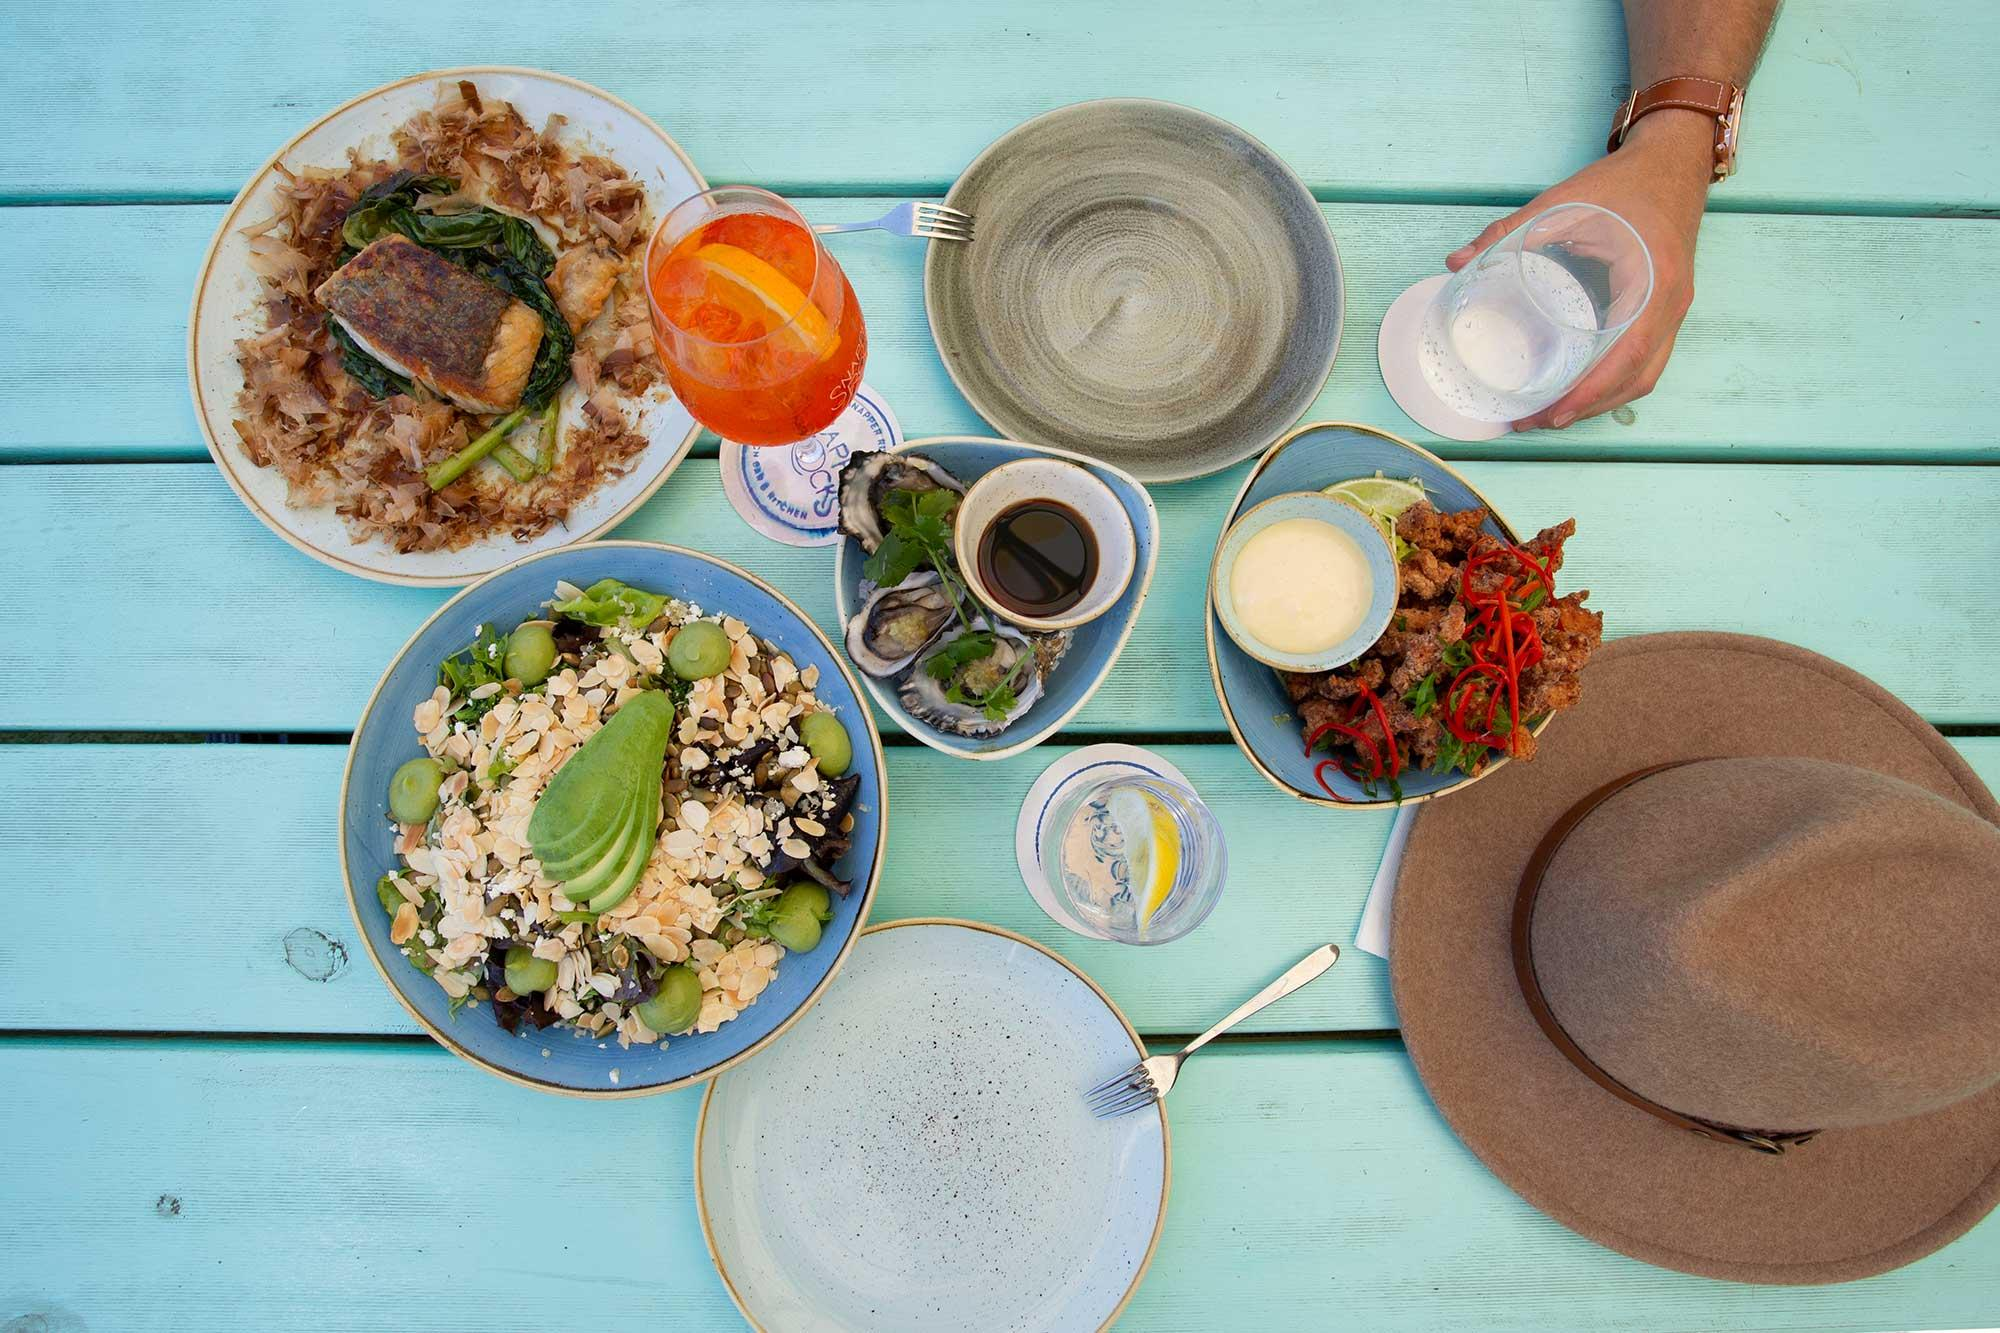 A Foodies guide to the NT